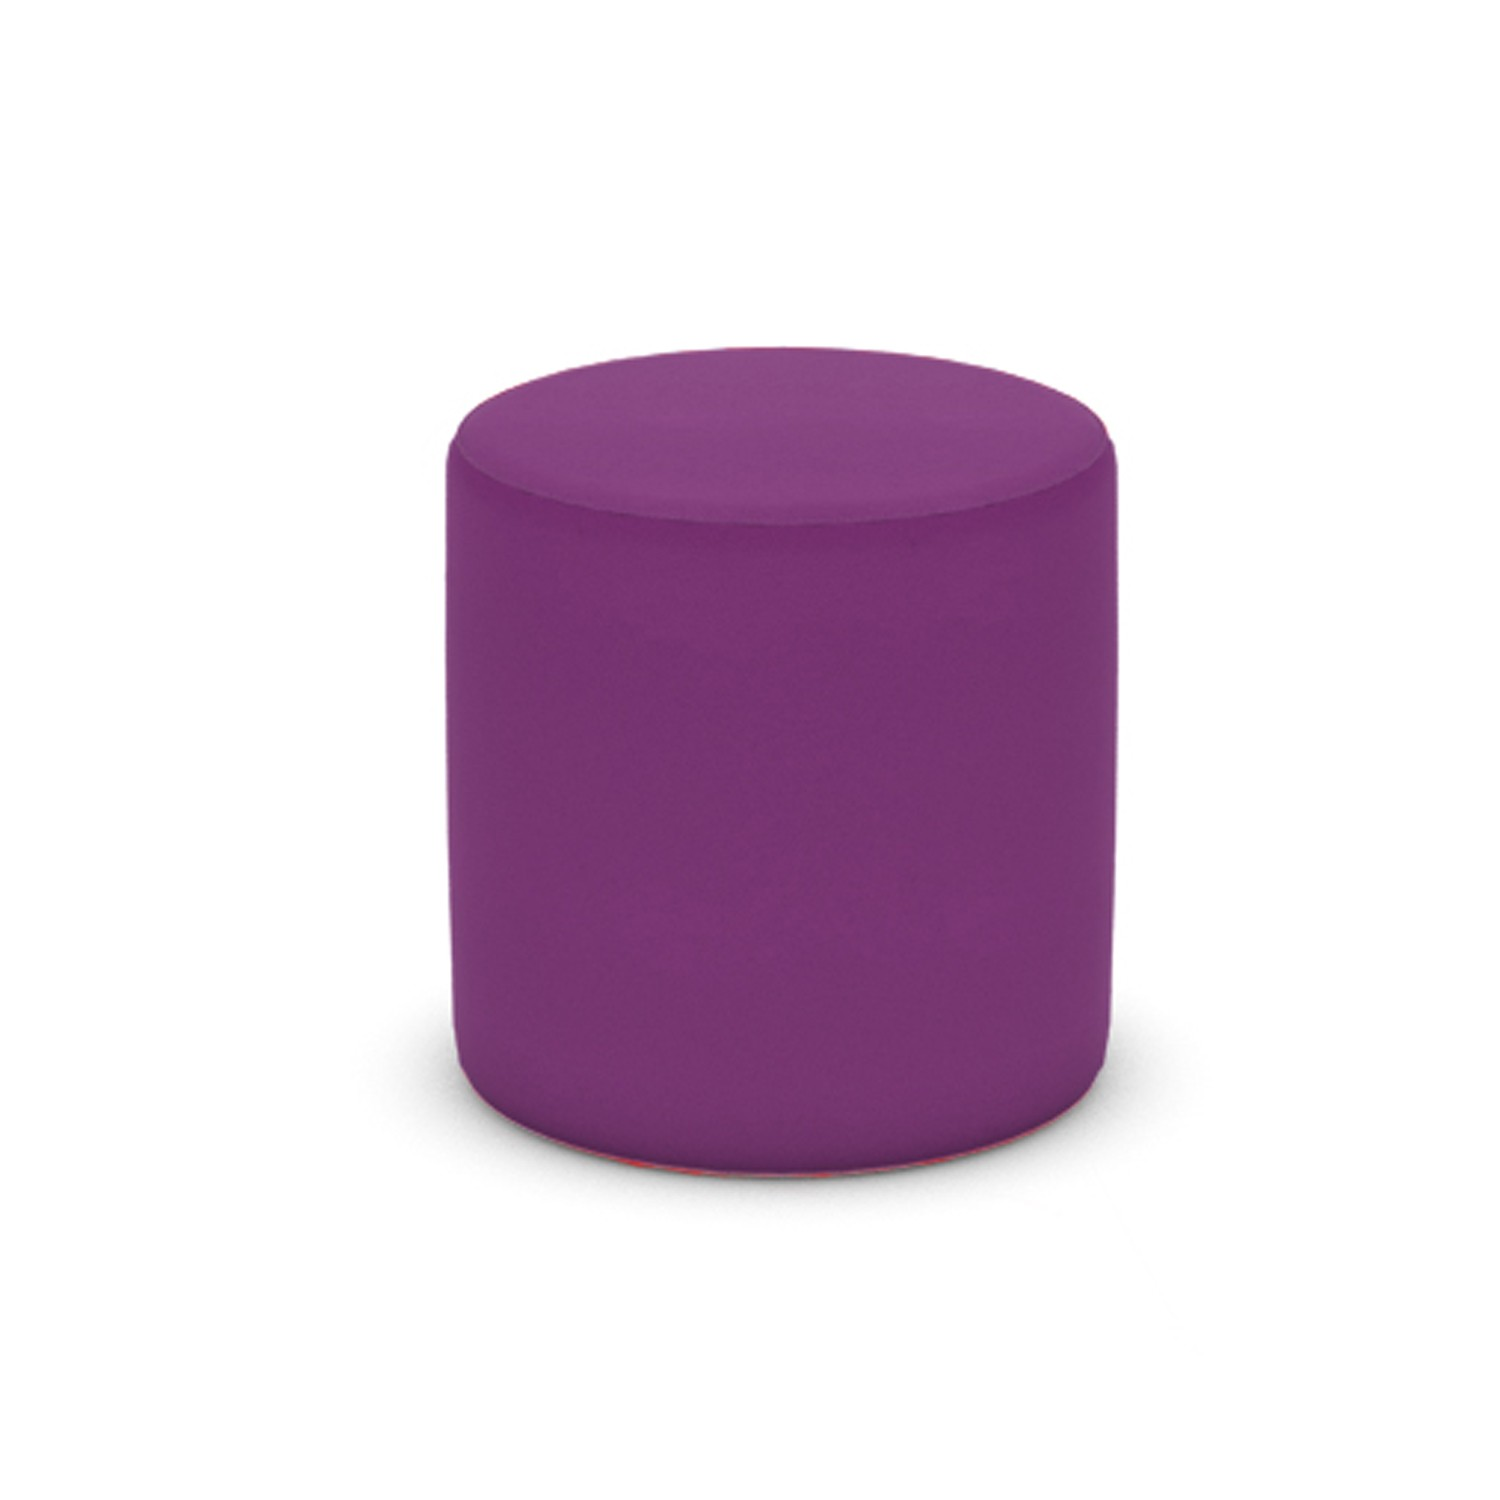 Soft Seating Circular Stool